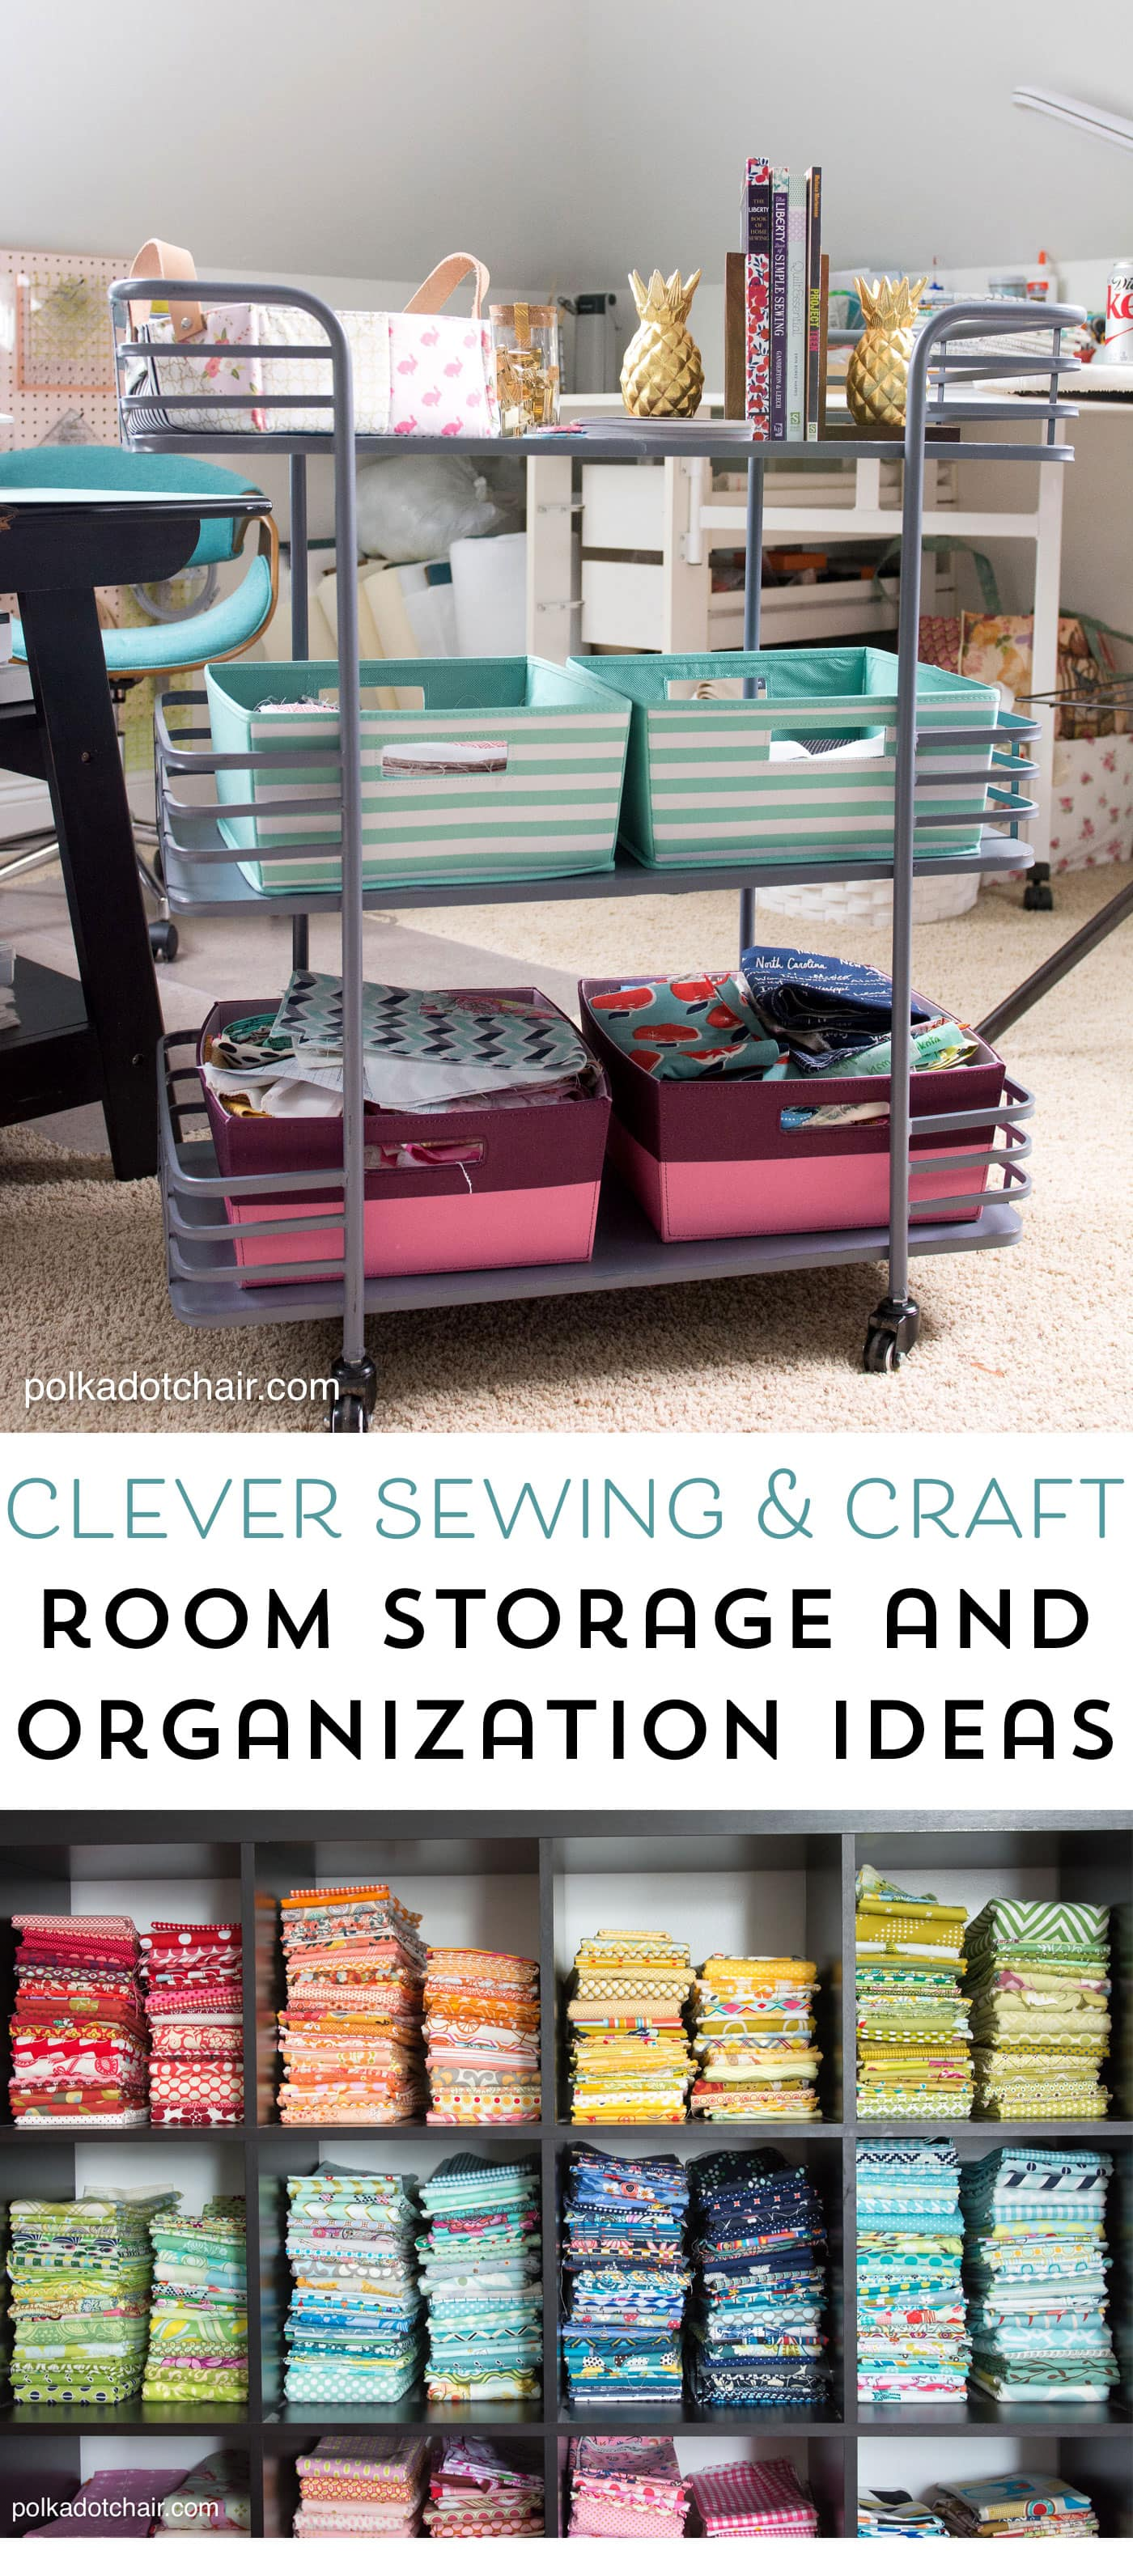 Cute  Clever Sewing Room Organization Ideas  HomeGoods Giveaway  The Polka Dot Chair